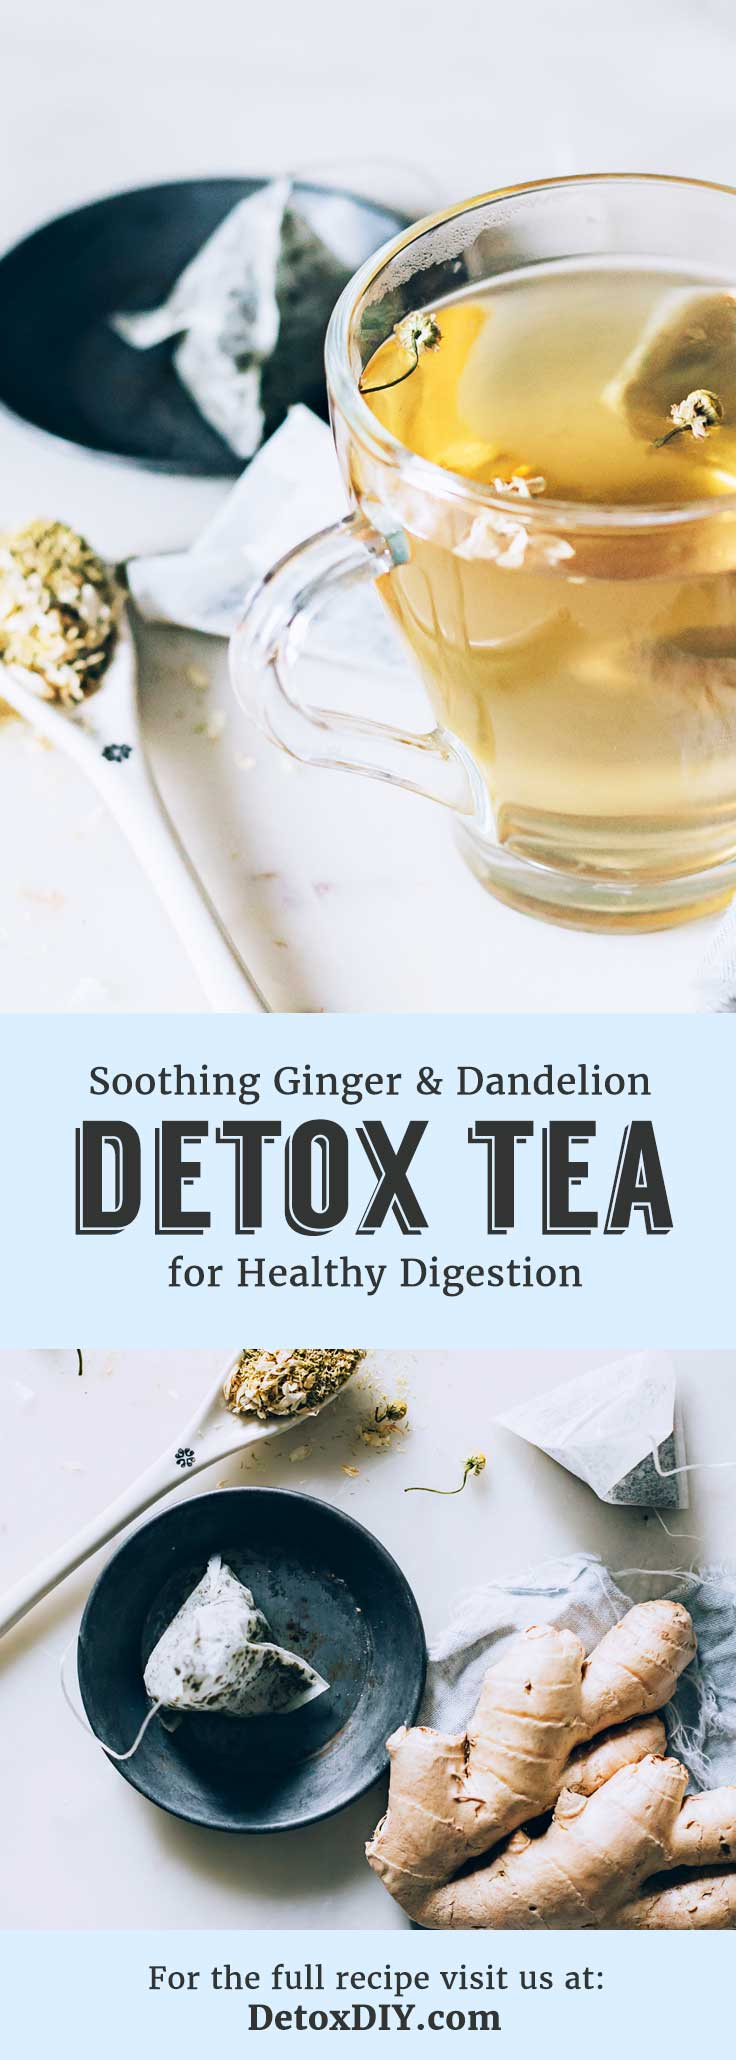 This soothing singer and dandelion tea will aid in healthy digestion and soothe an upset stomach.